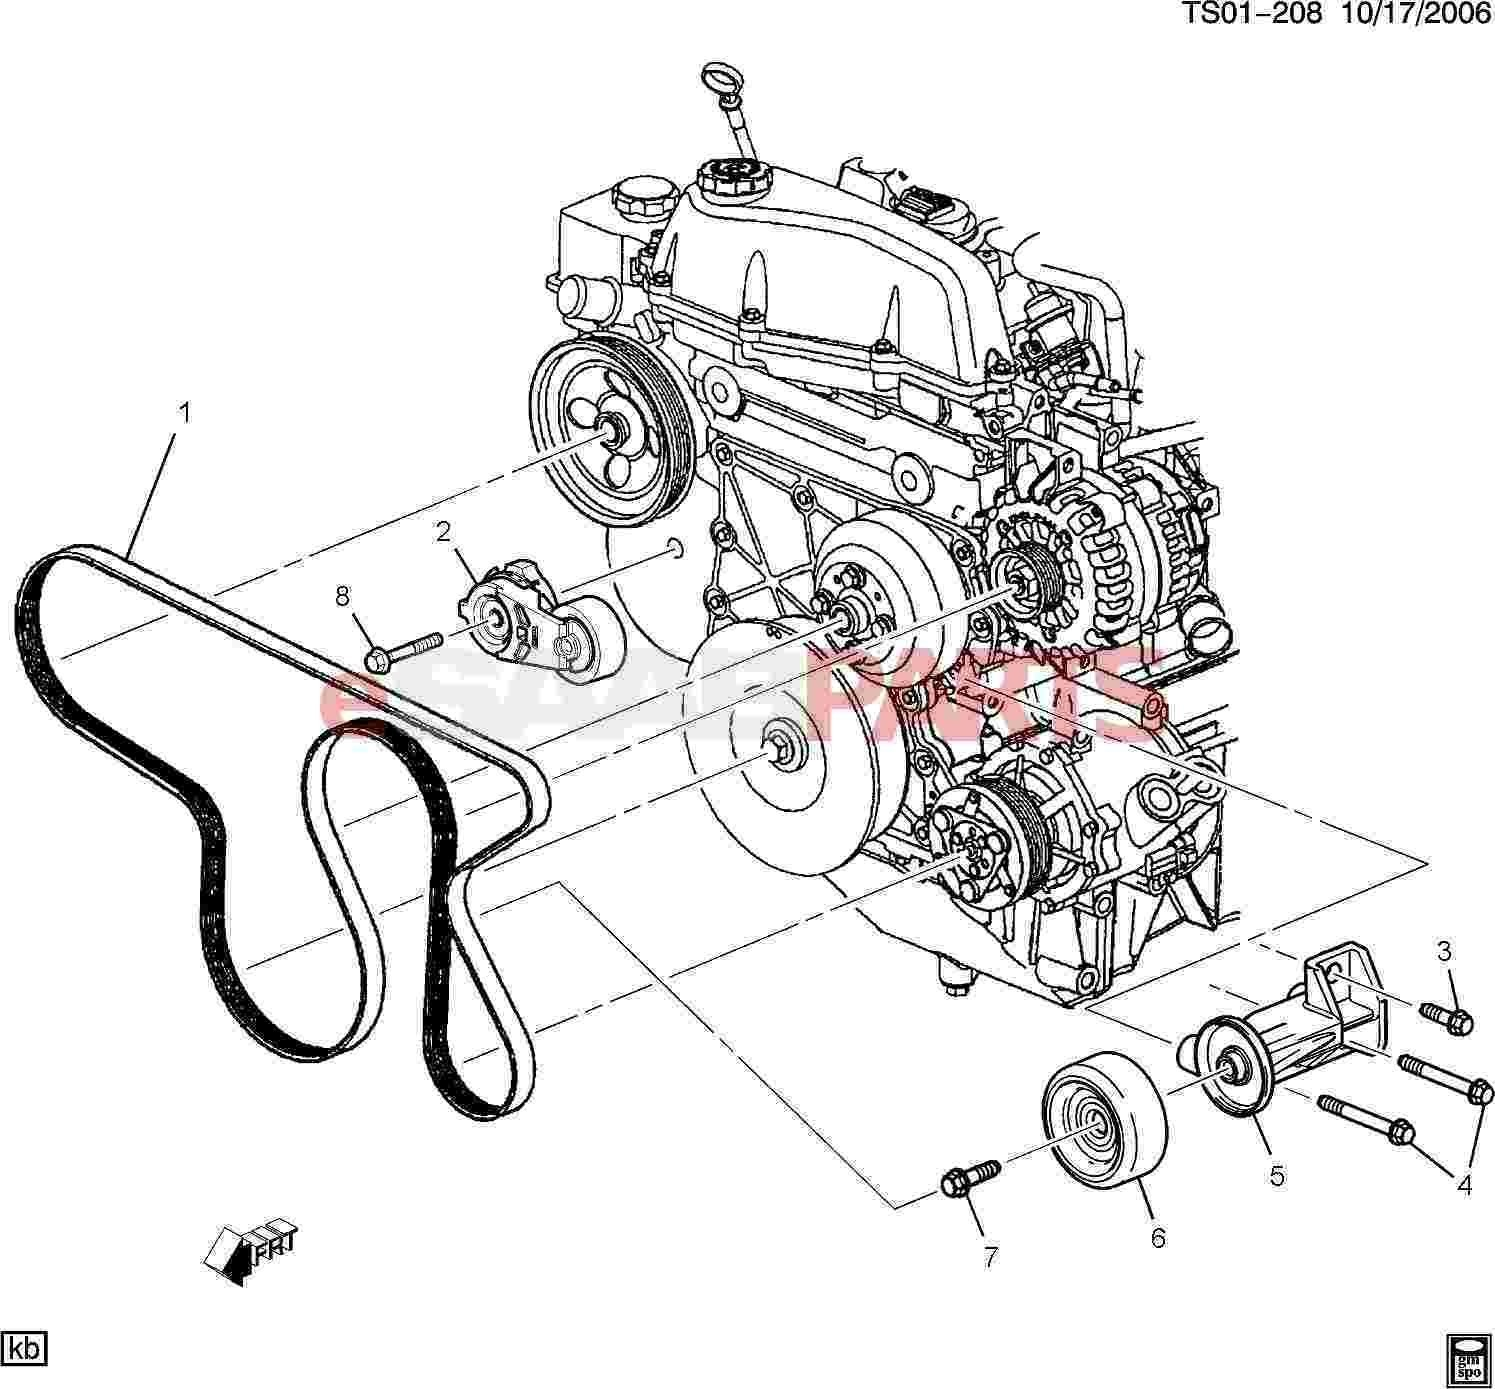 2001 toyota Tacoma Engine Diagram 2001 toyota Ta A Parts Diagram ] Saab Bolt Hfh M10x1 5—35 32thd 22 Of 2001 toyota Tacoma Engine Diagram